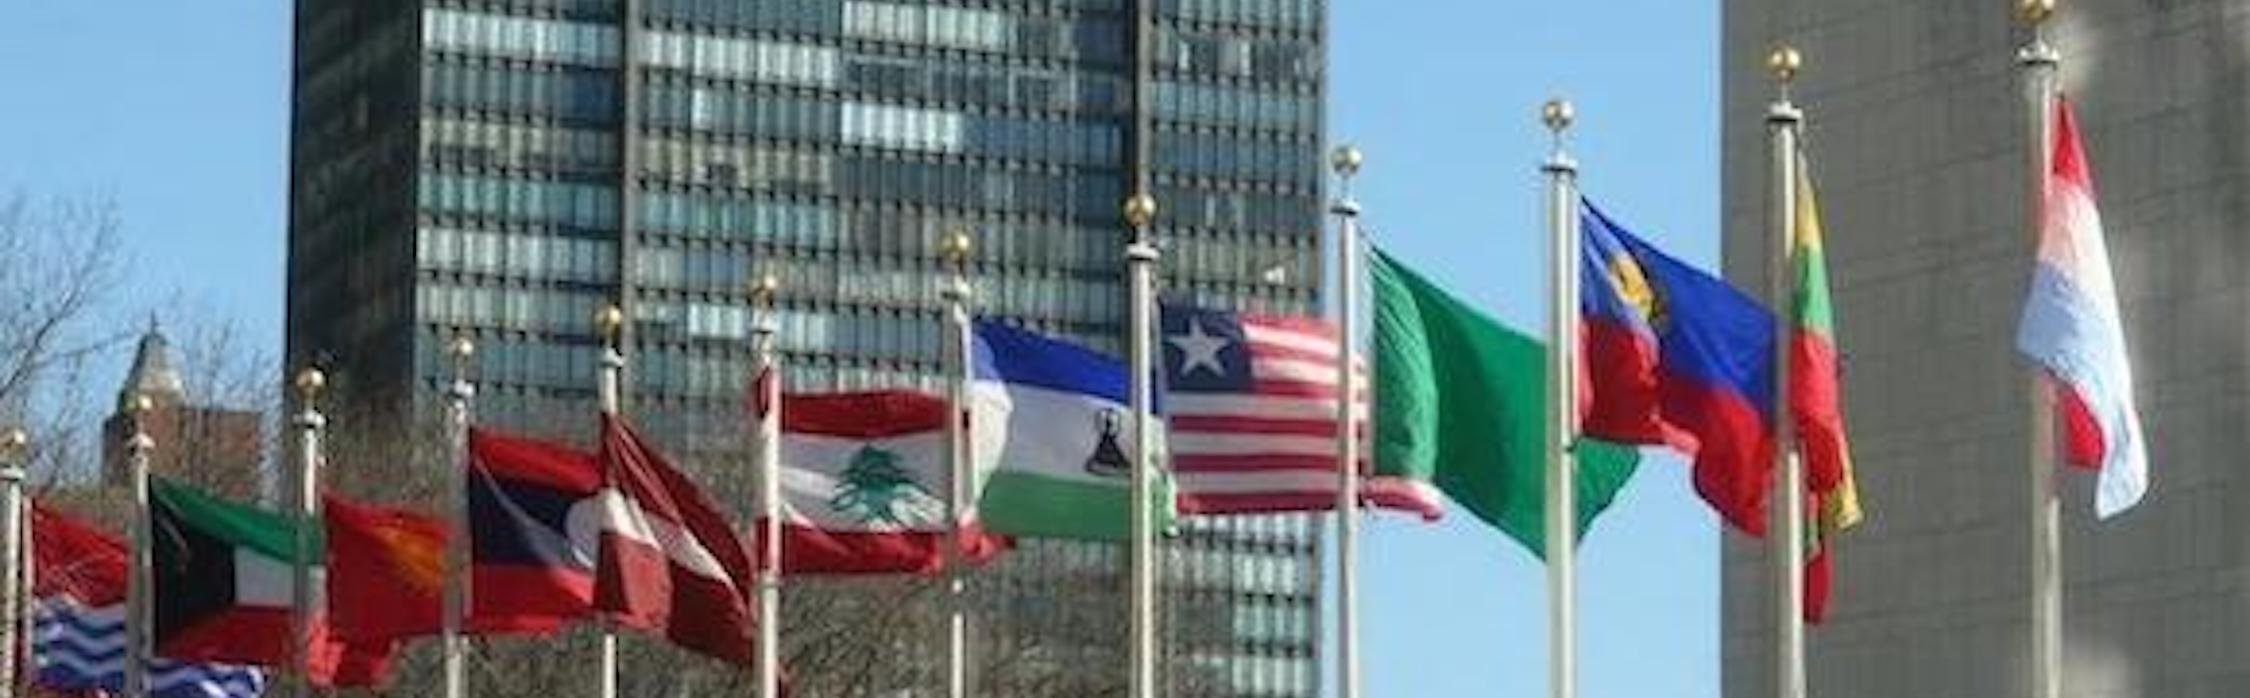 flags at United Nations building